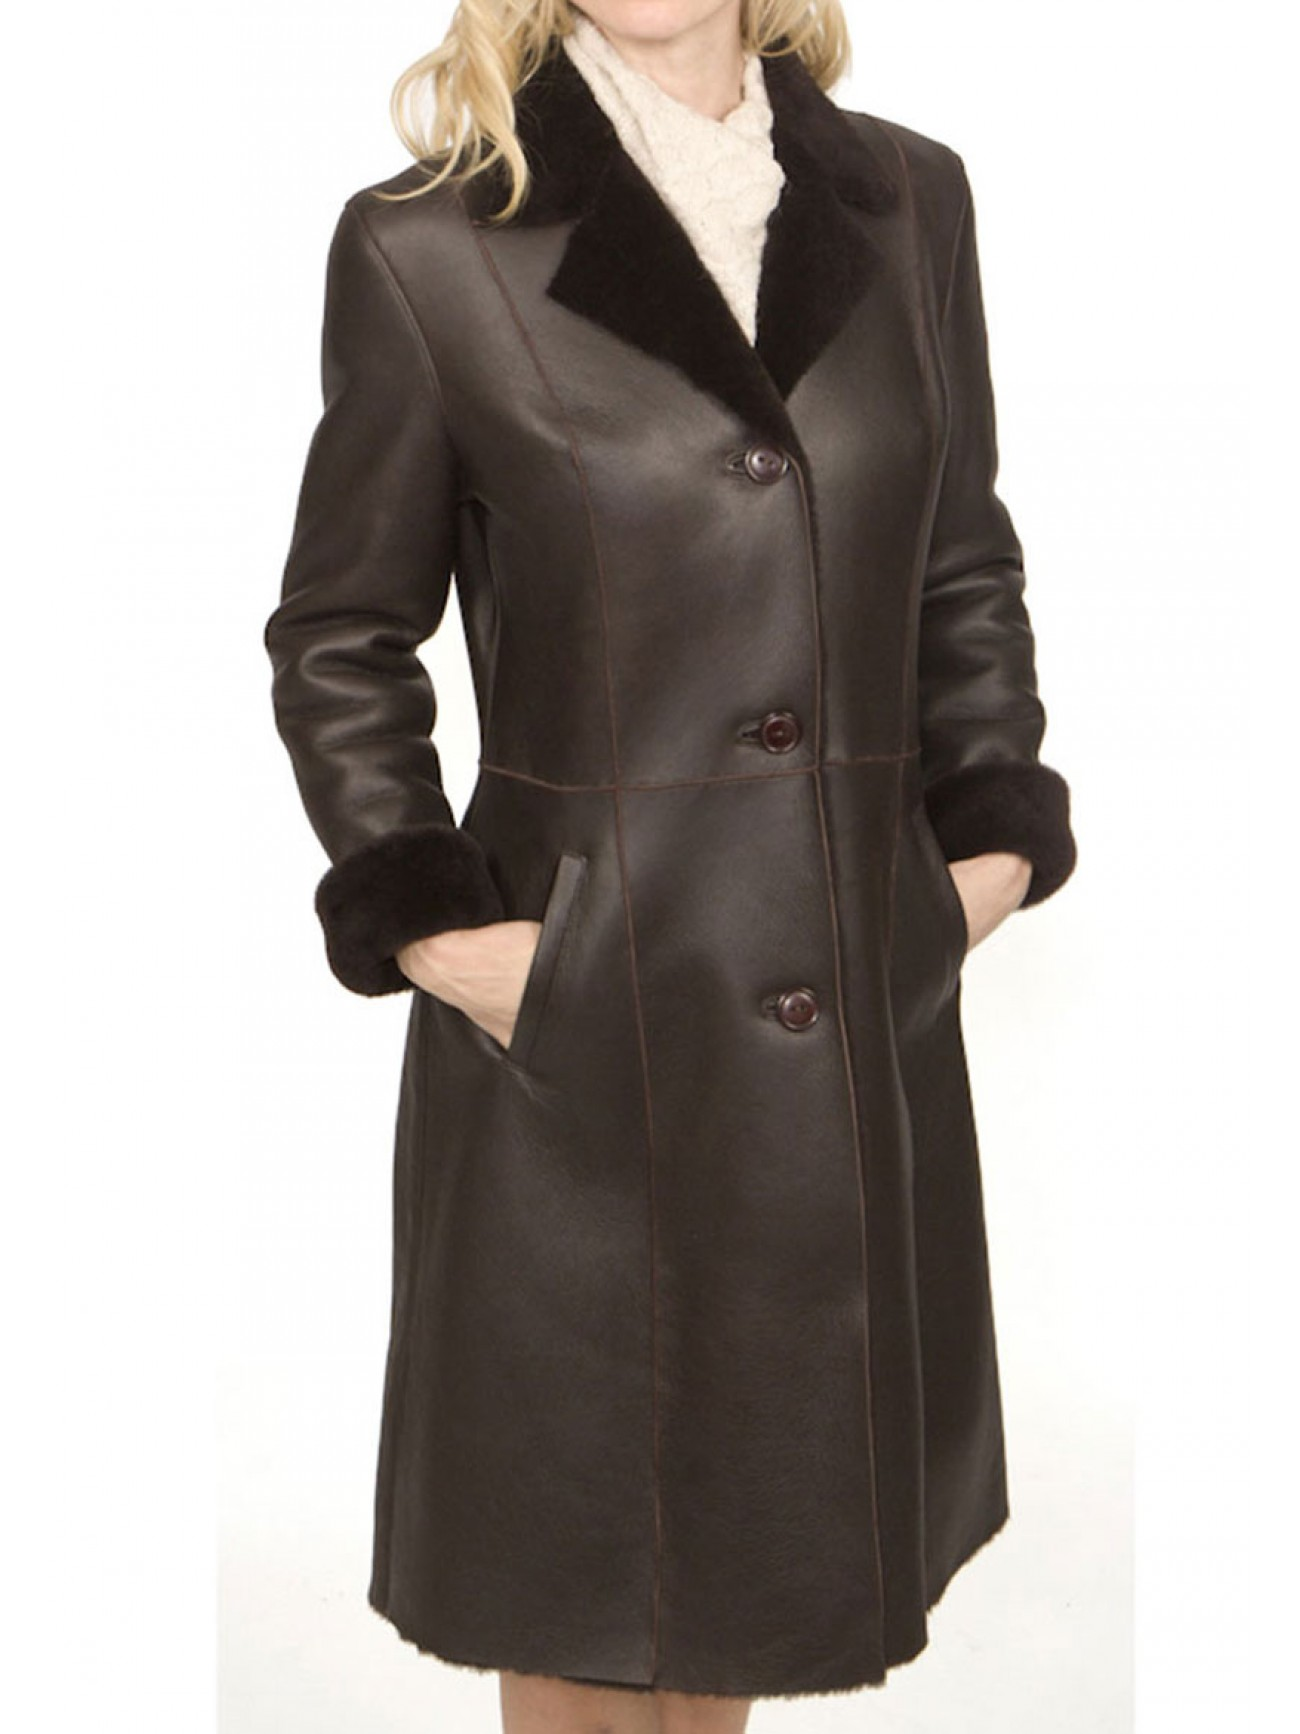 Misses Coats & All-Weather Outwear | Coldwater CreekStyles You Know & Love· Official Site· New Arrivals· Look & Feel Your Best.